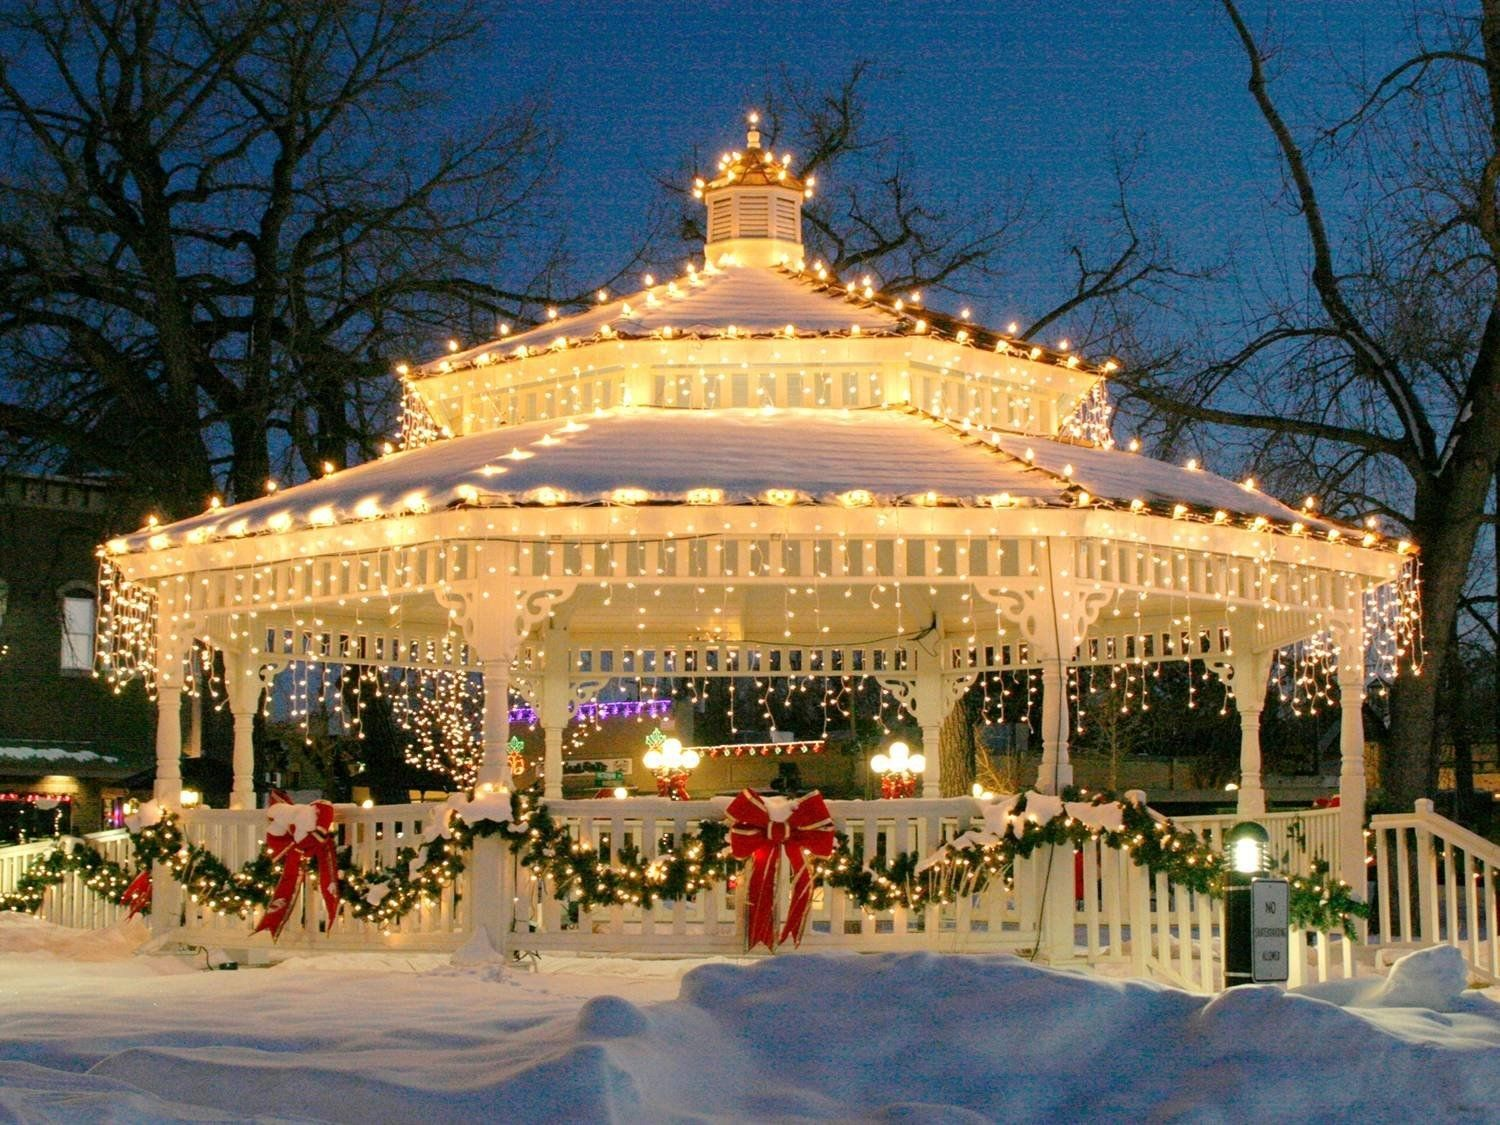 pergola lighting ideas design. fine design gazebo lights for christmas pictures photos and images facebook  tumblr pinterest to pergola lighting ideas design